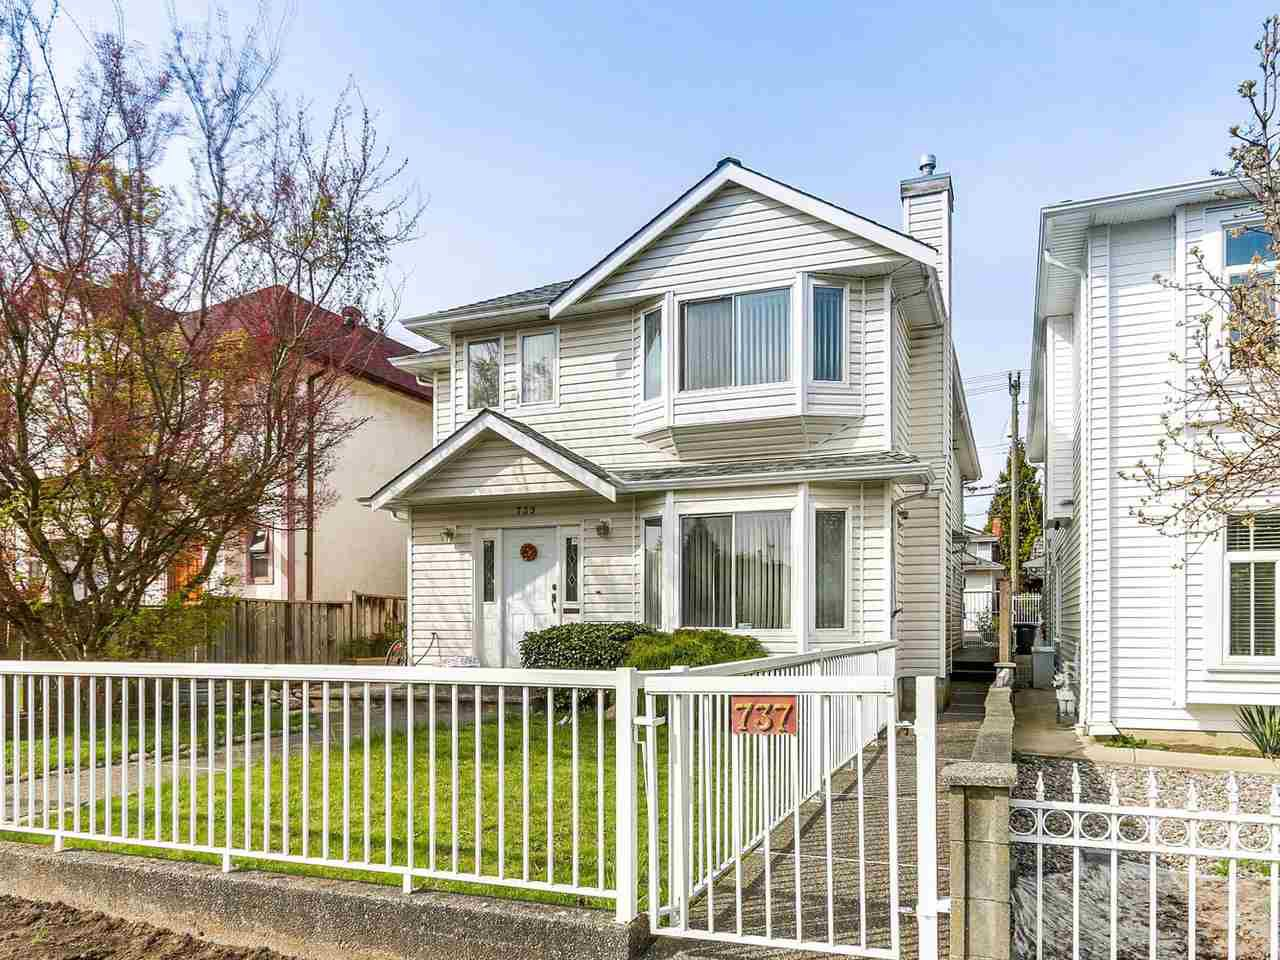 Main Photo: 737 W 69TH Avenue in Vancouver: Marpole House 1/2 Duplex for sale (Vancouver West)  : MLS®# R2156415